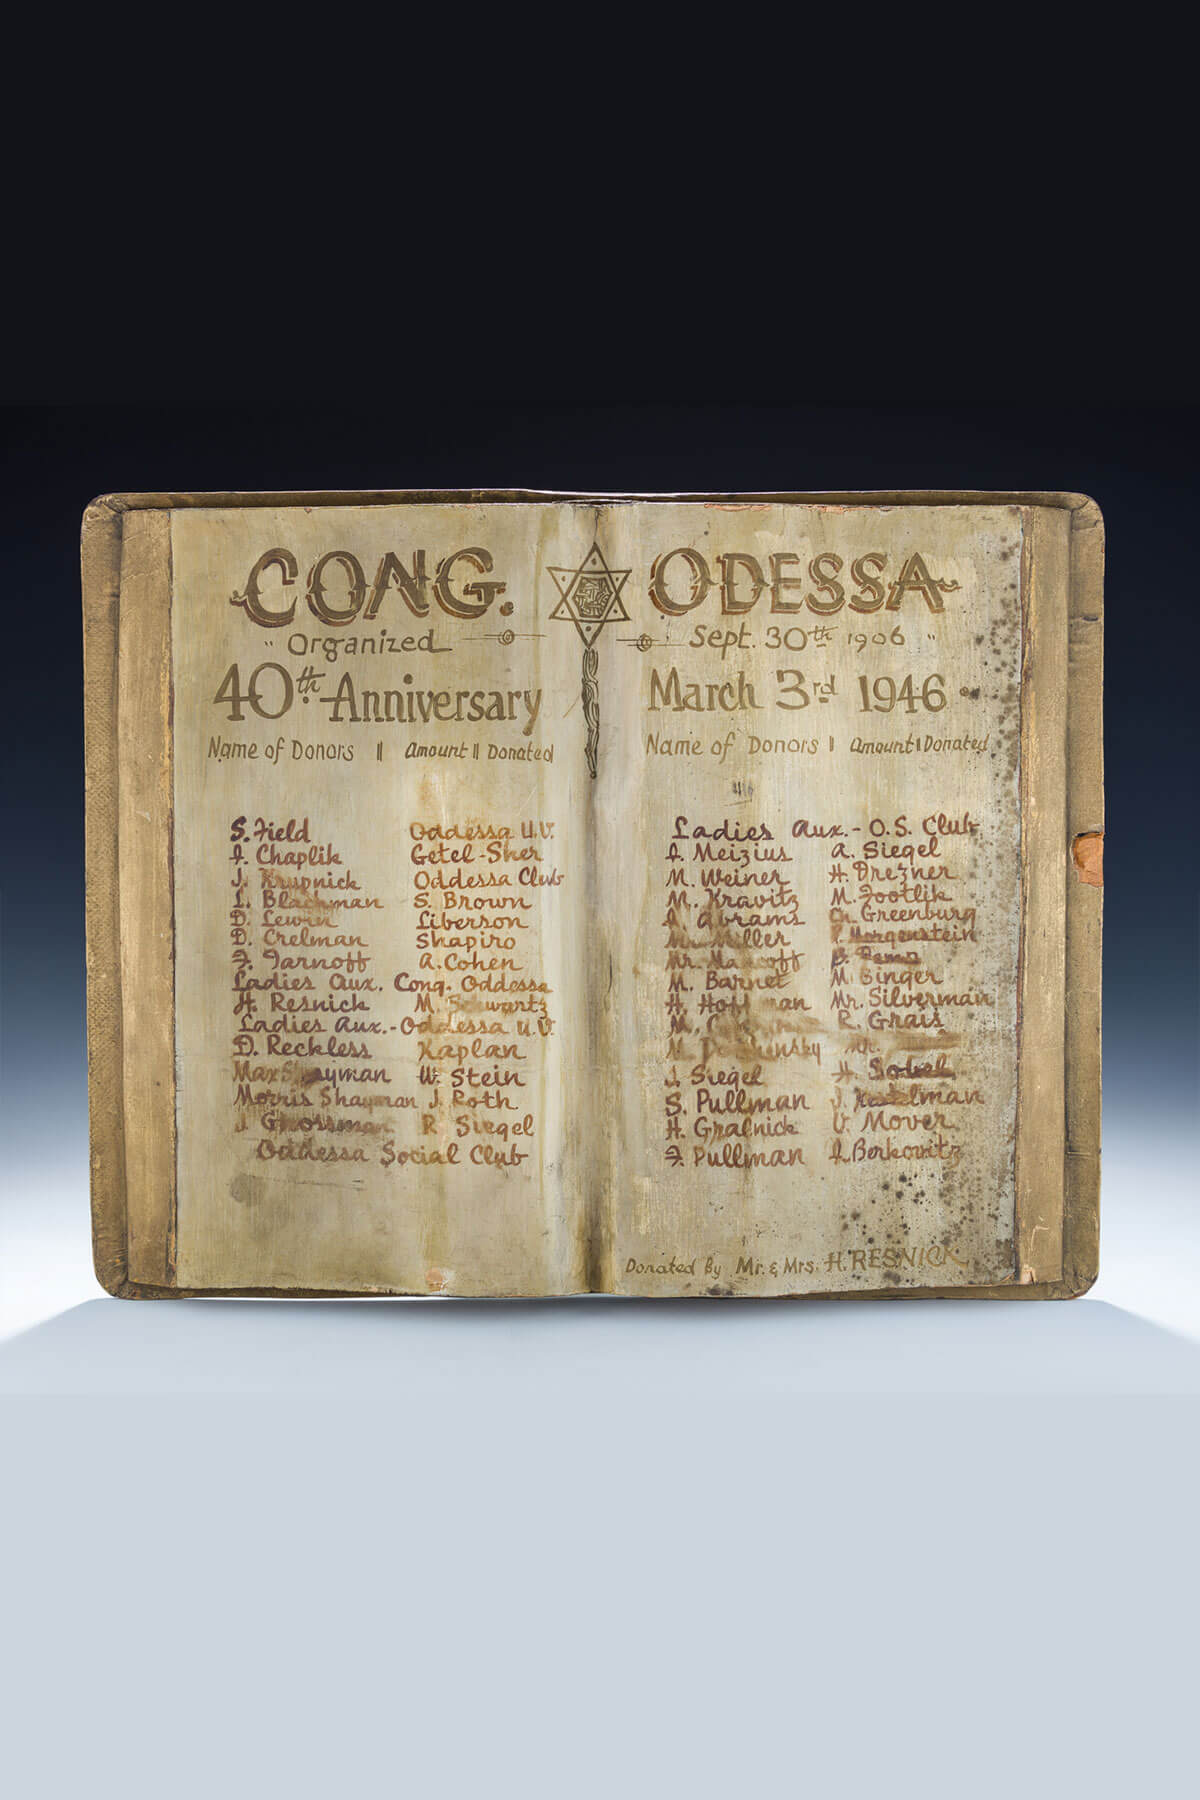 91. A Painted Wooden Donation Plaque for Congregation Odessa